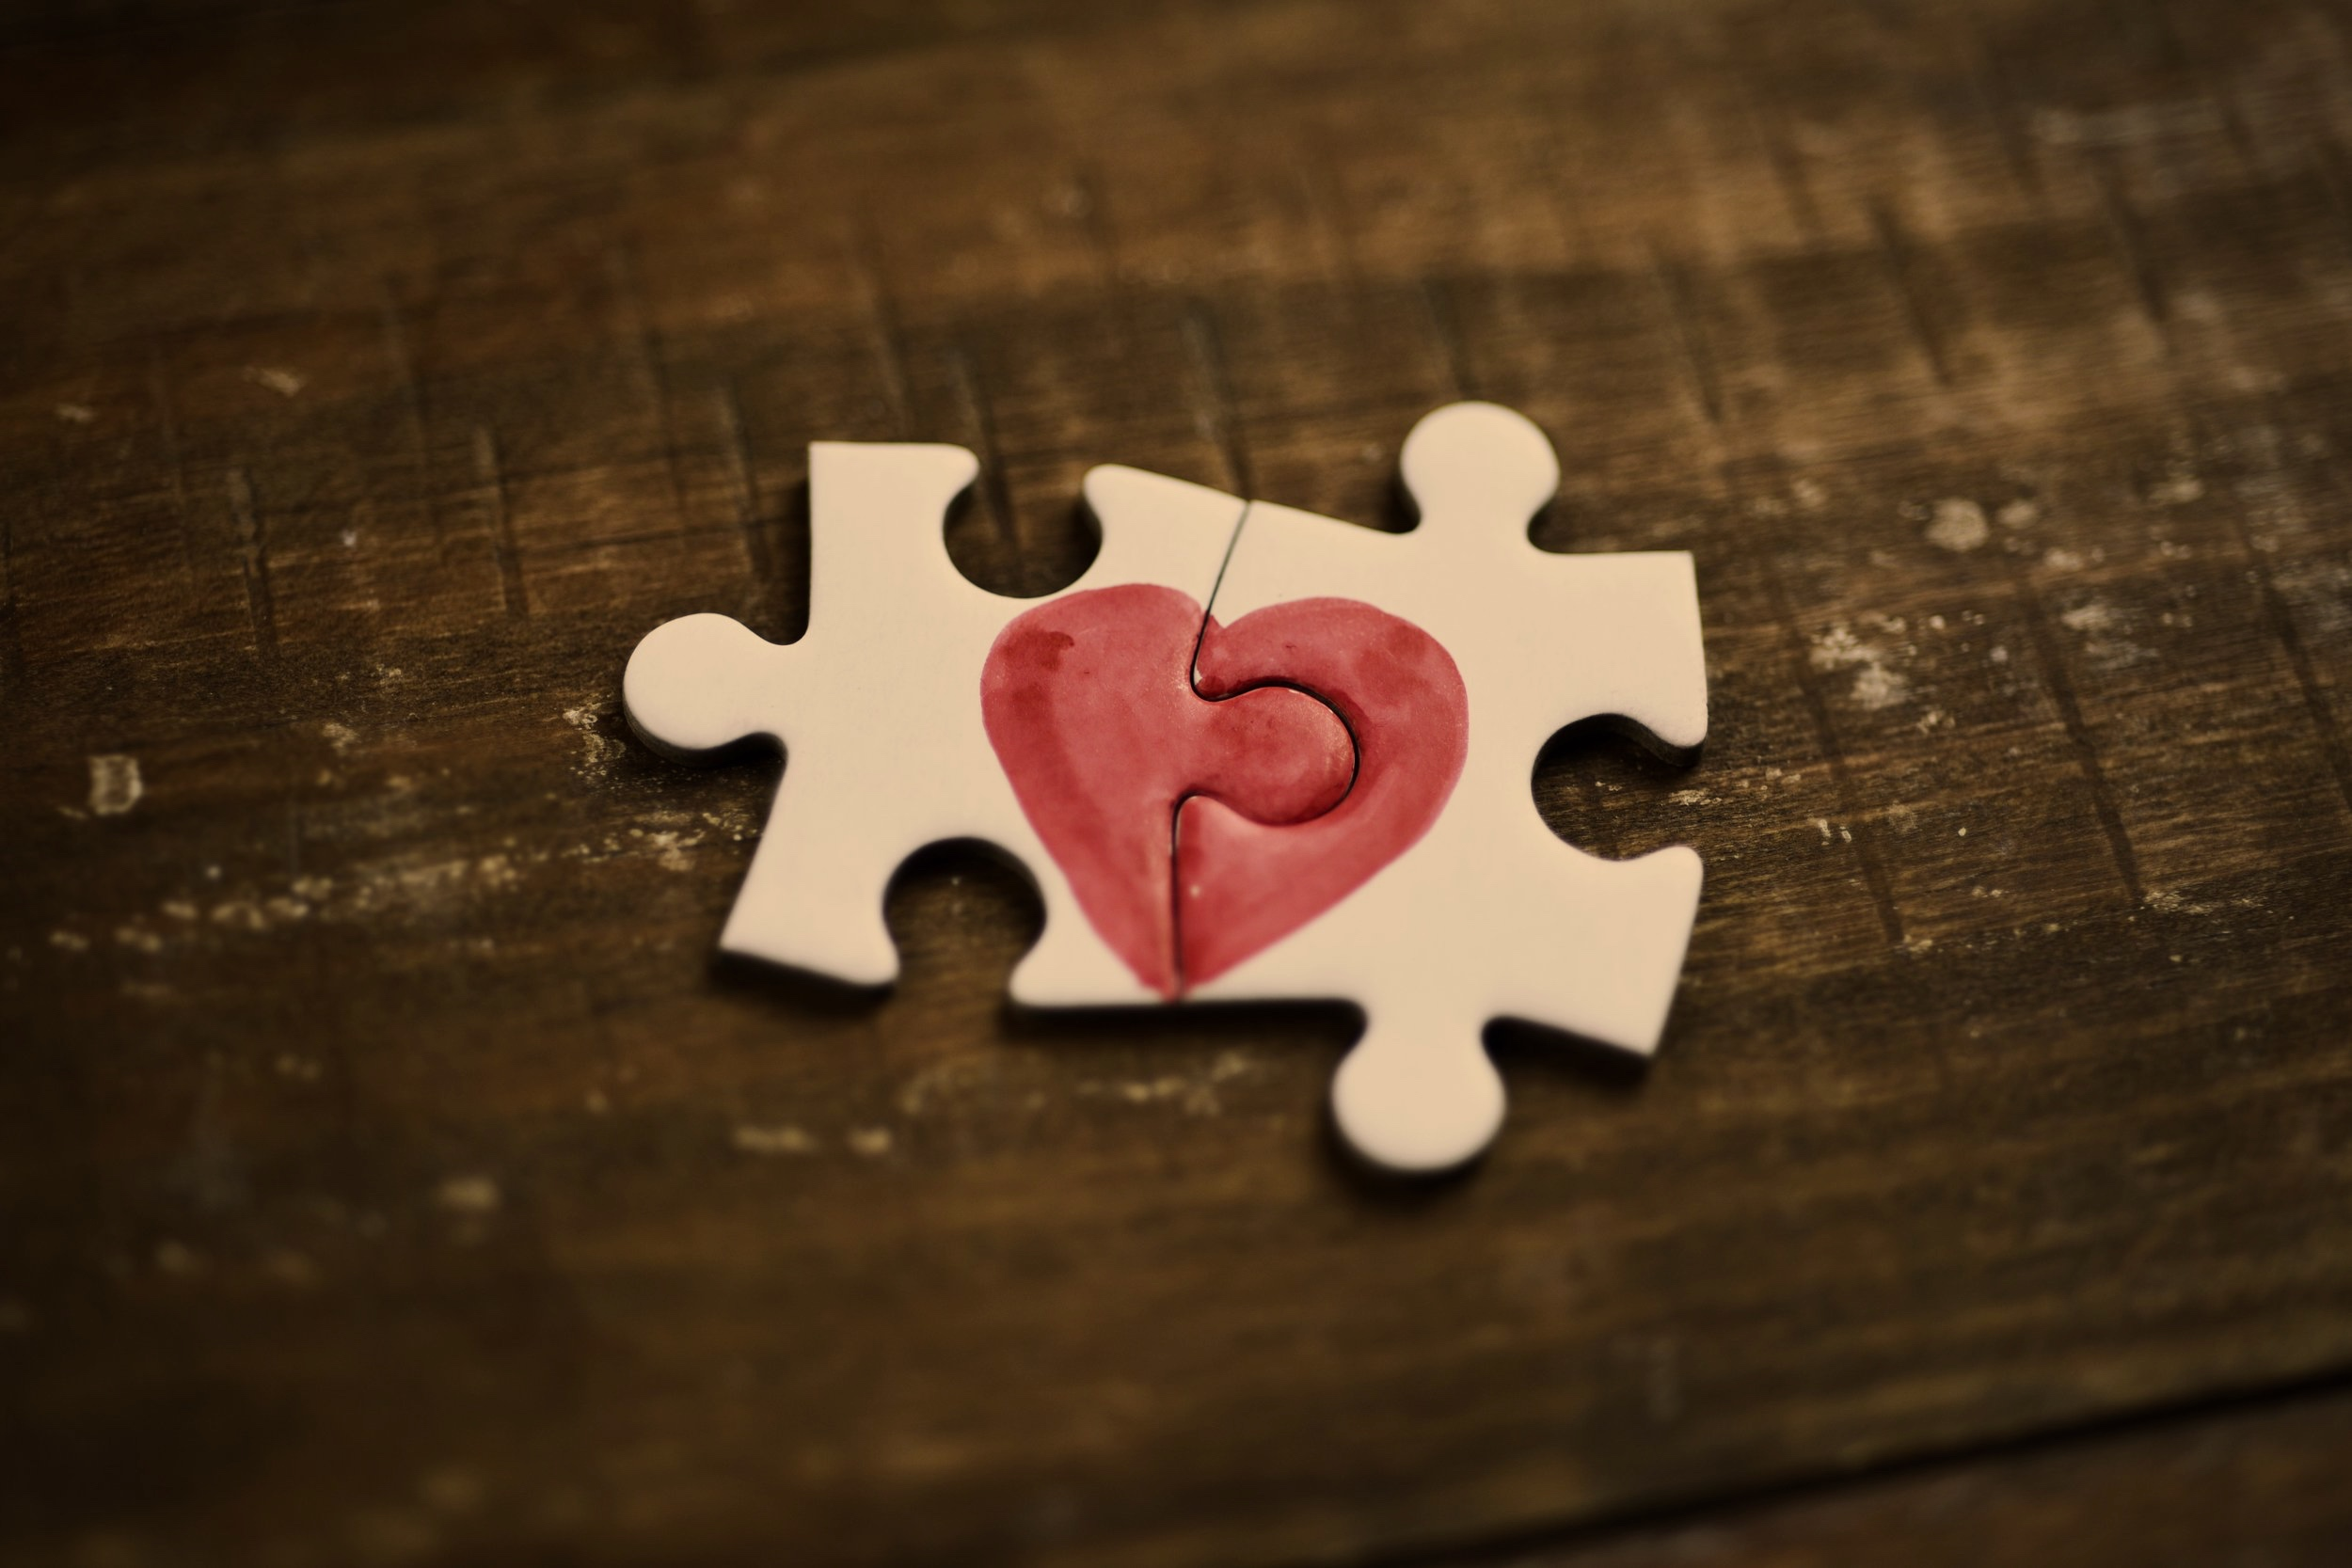 heart+puzzle+%28small%29.jpg